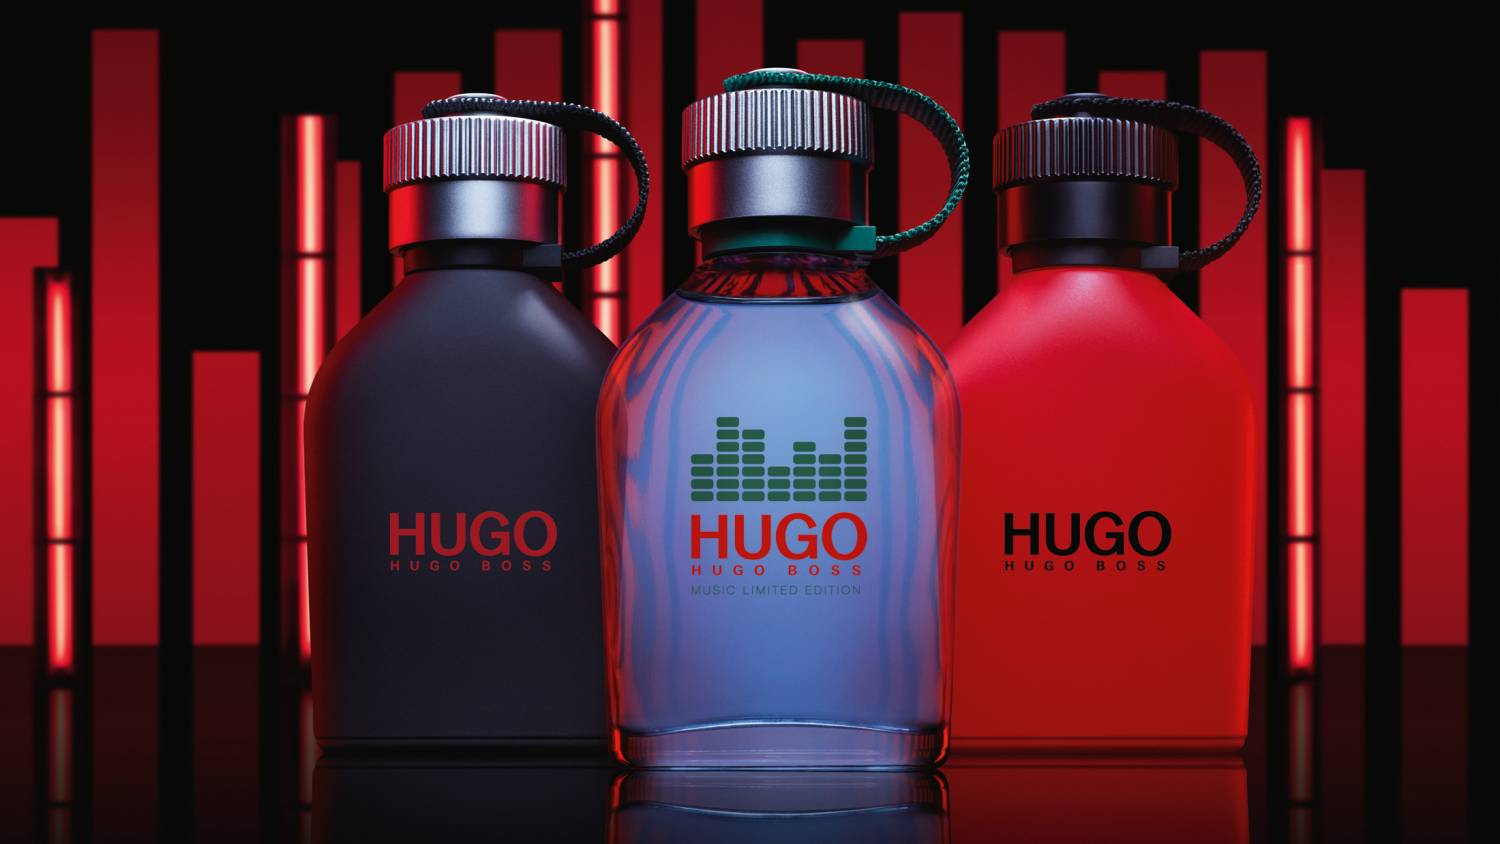 Музыка и видеоролик из рекламы Hugo Boss - Hugo Man Music Edition (Jared Leto)